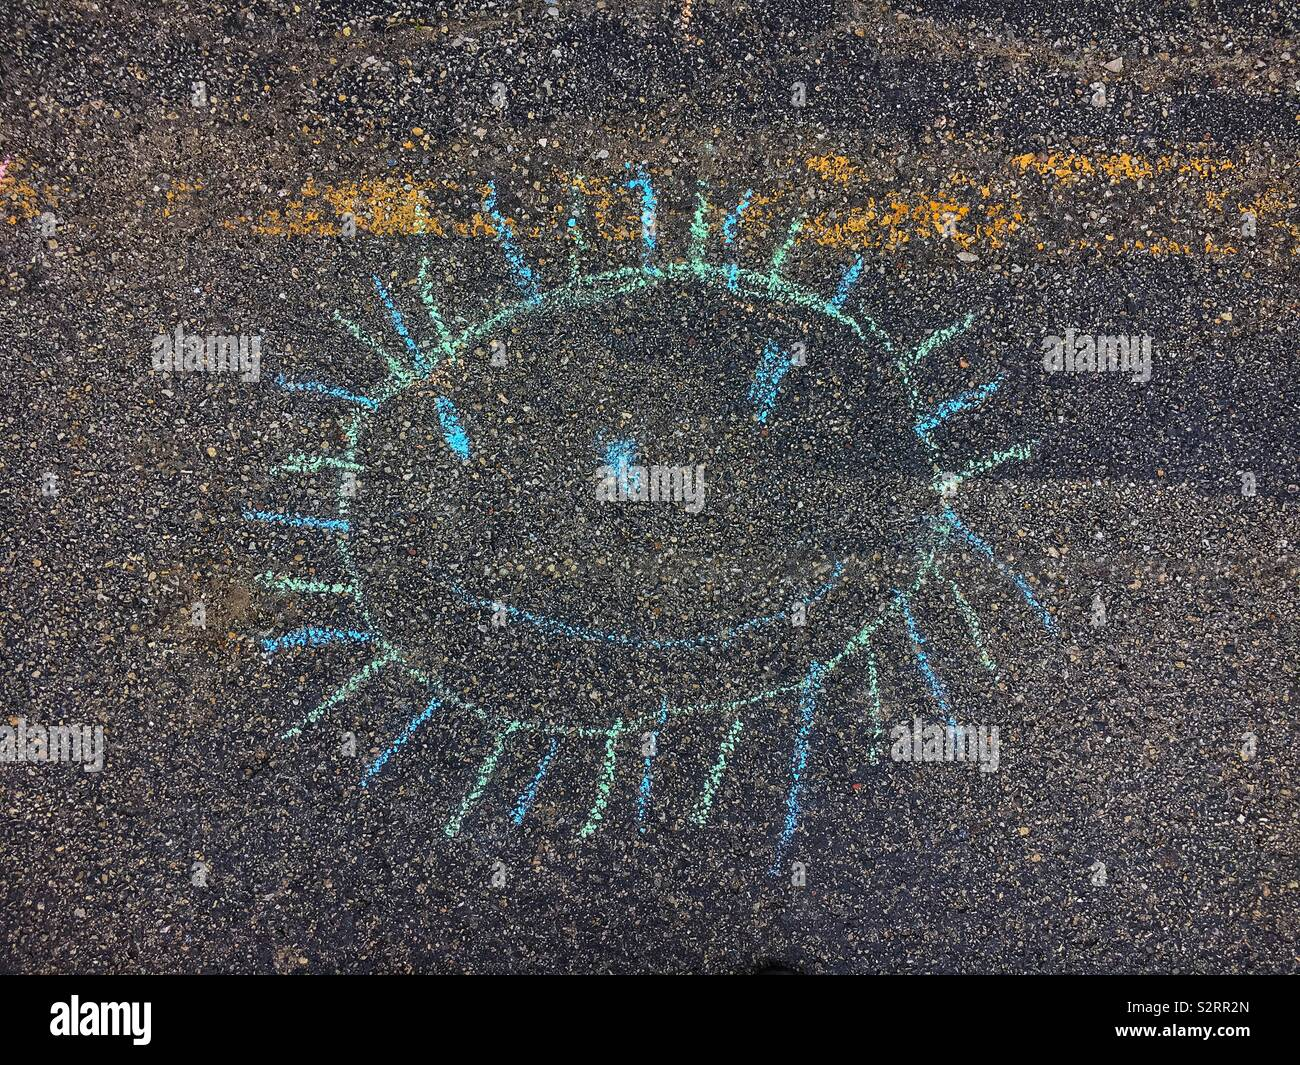 Chalk drawing on pavement of a smiling sun made by a third grader. Stock Photo